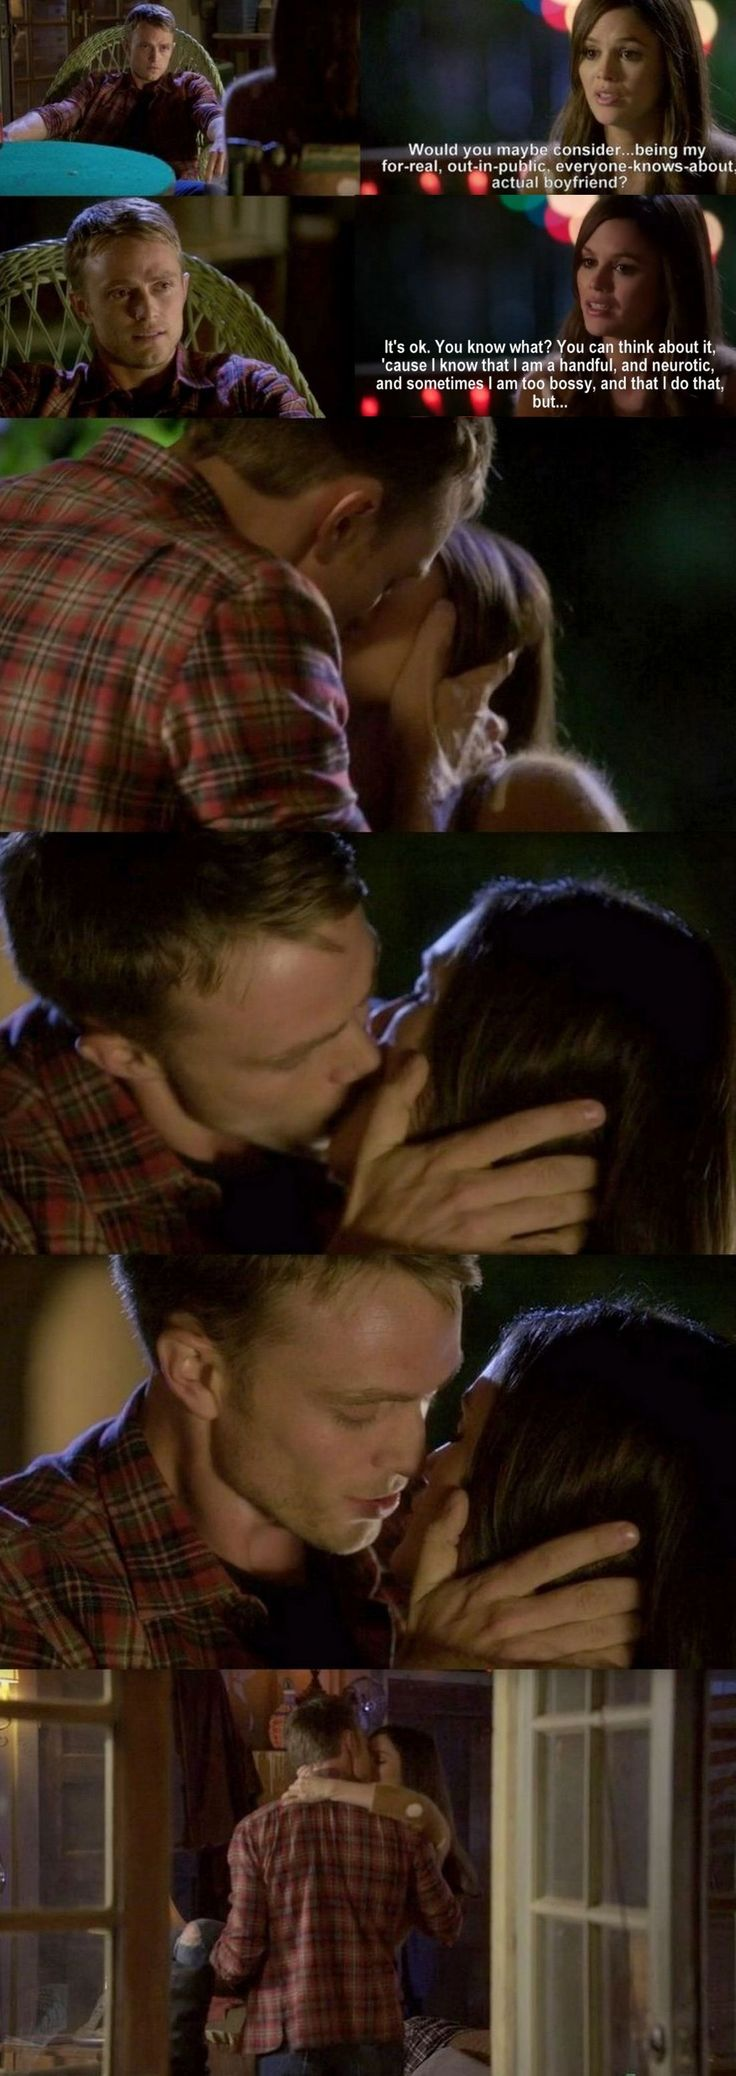 Hart of Dixie - S02E10 - For-real, out-in-public, everyone-knows-about, actual boyfriend ♥